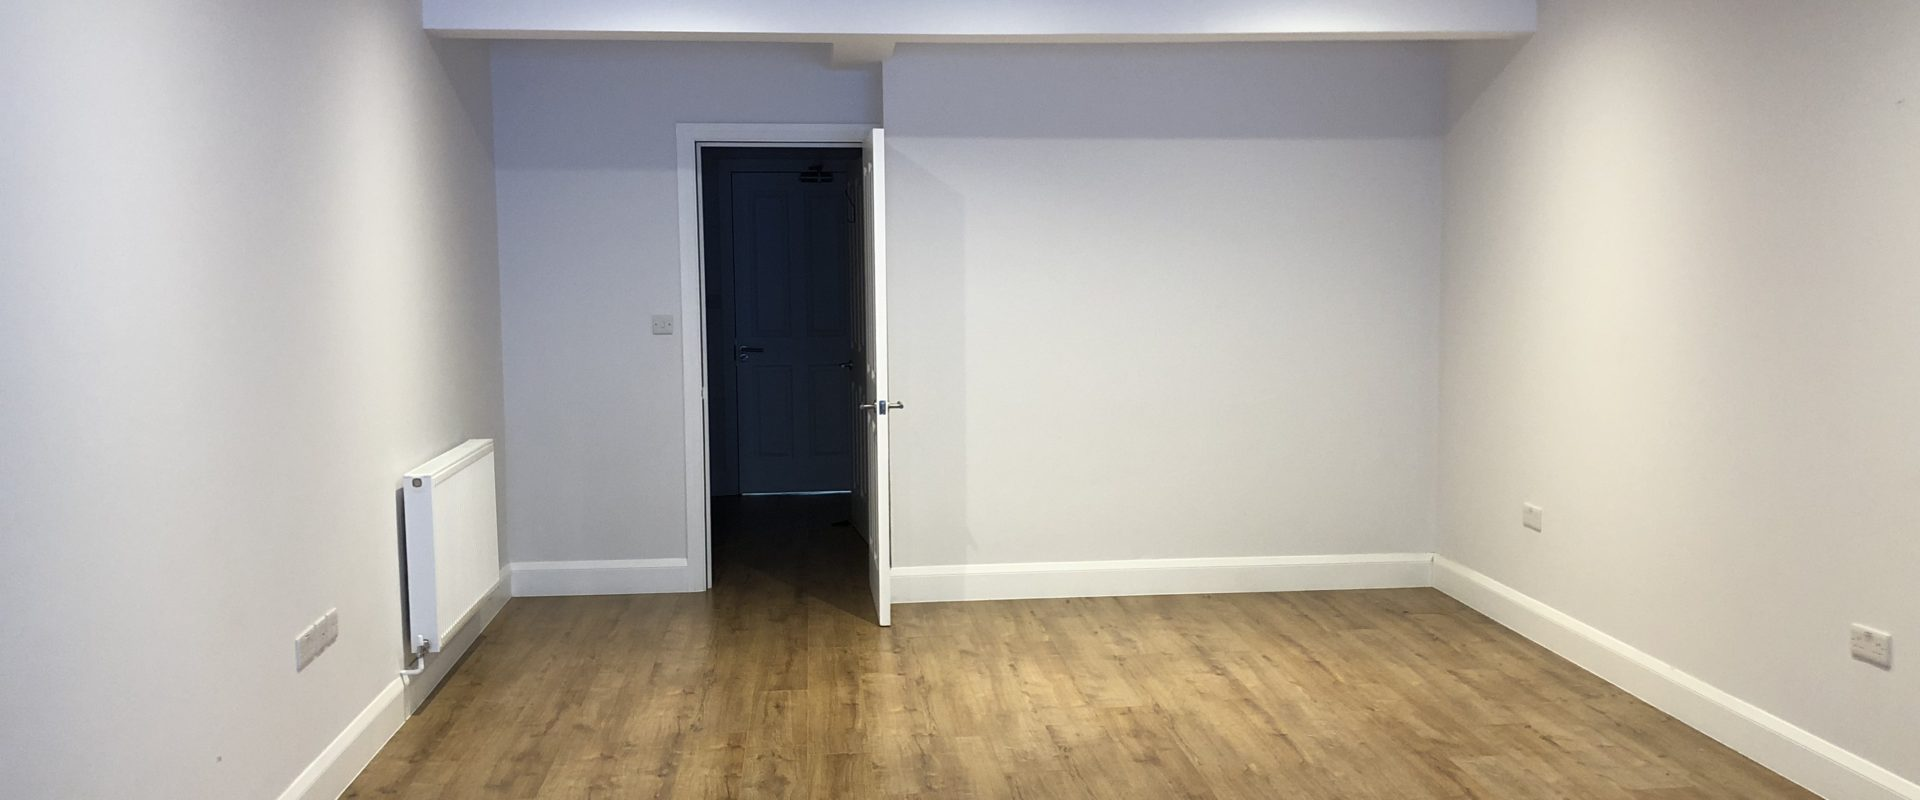 CENTRALLY LOCATED NEWLY REFURBISHED OFFICE